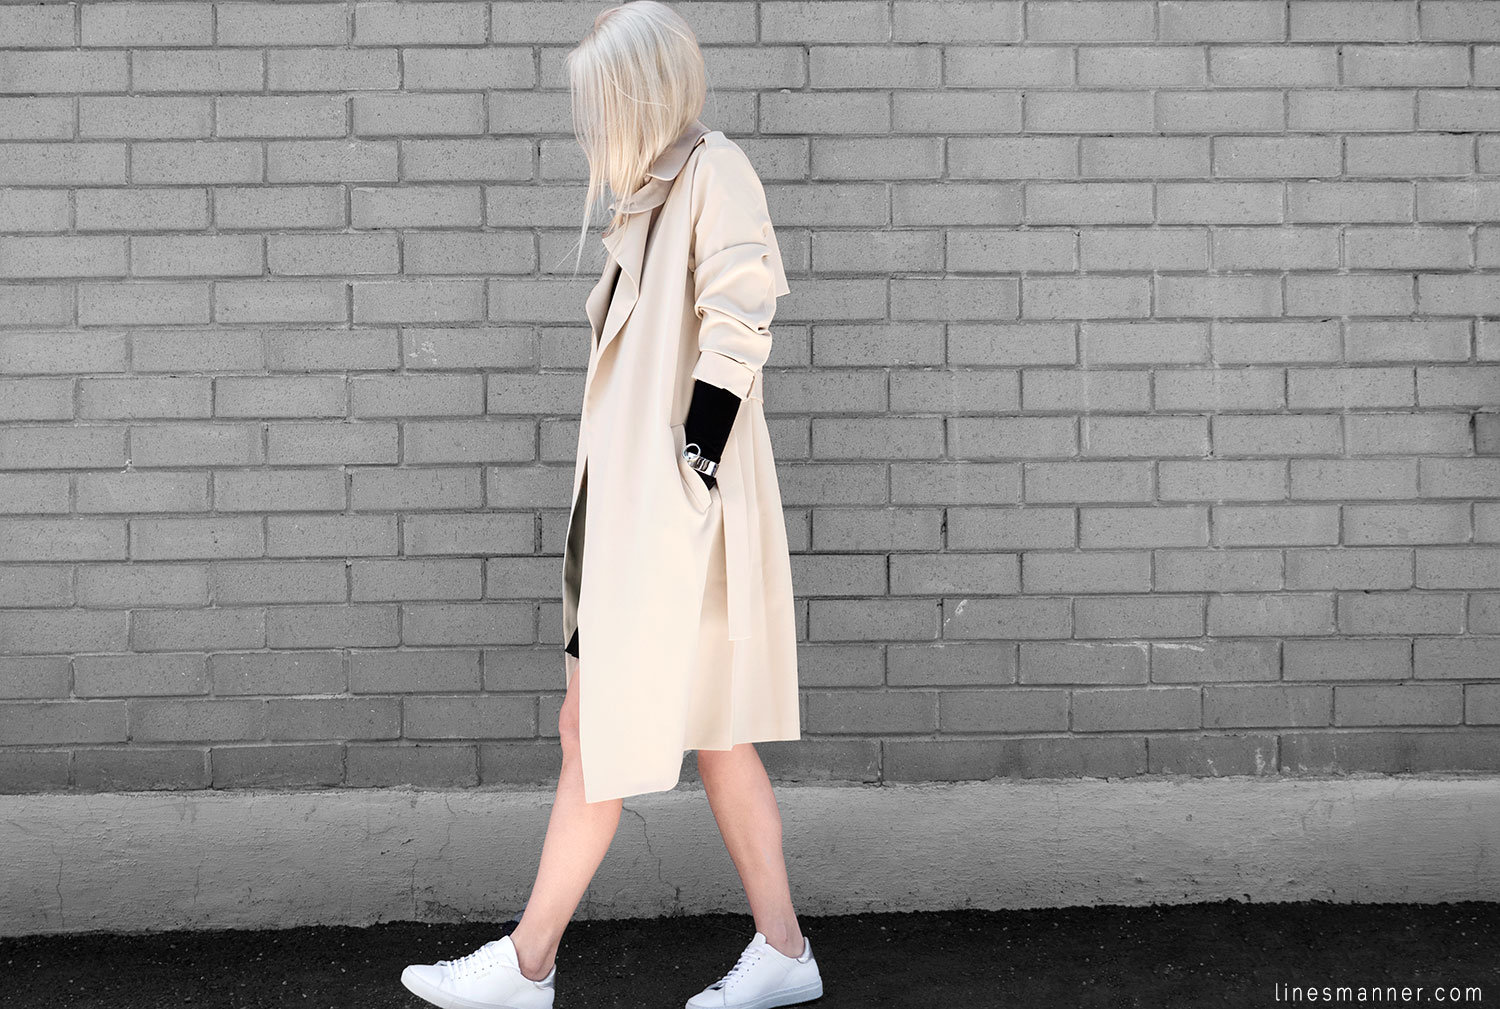 Lines-Manner-Trench-Minimal-Outfits-Fashion-Essentials-Classics-Timeless-Versatile-Details-Hues-Nonchalance-Elegance-Casual-Effortless-2